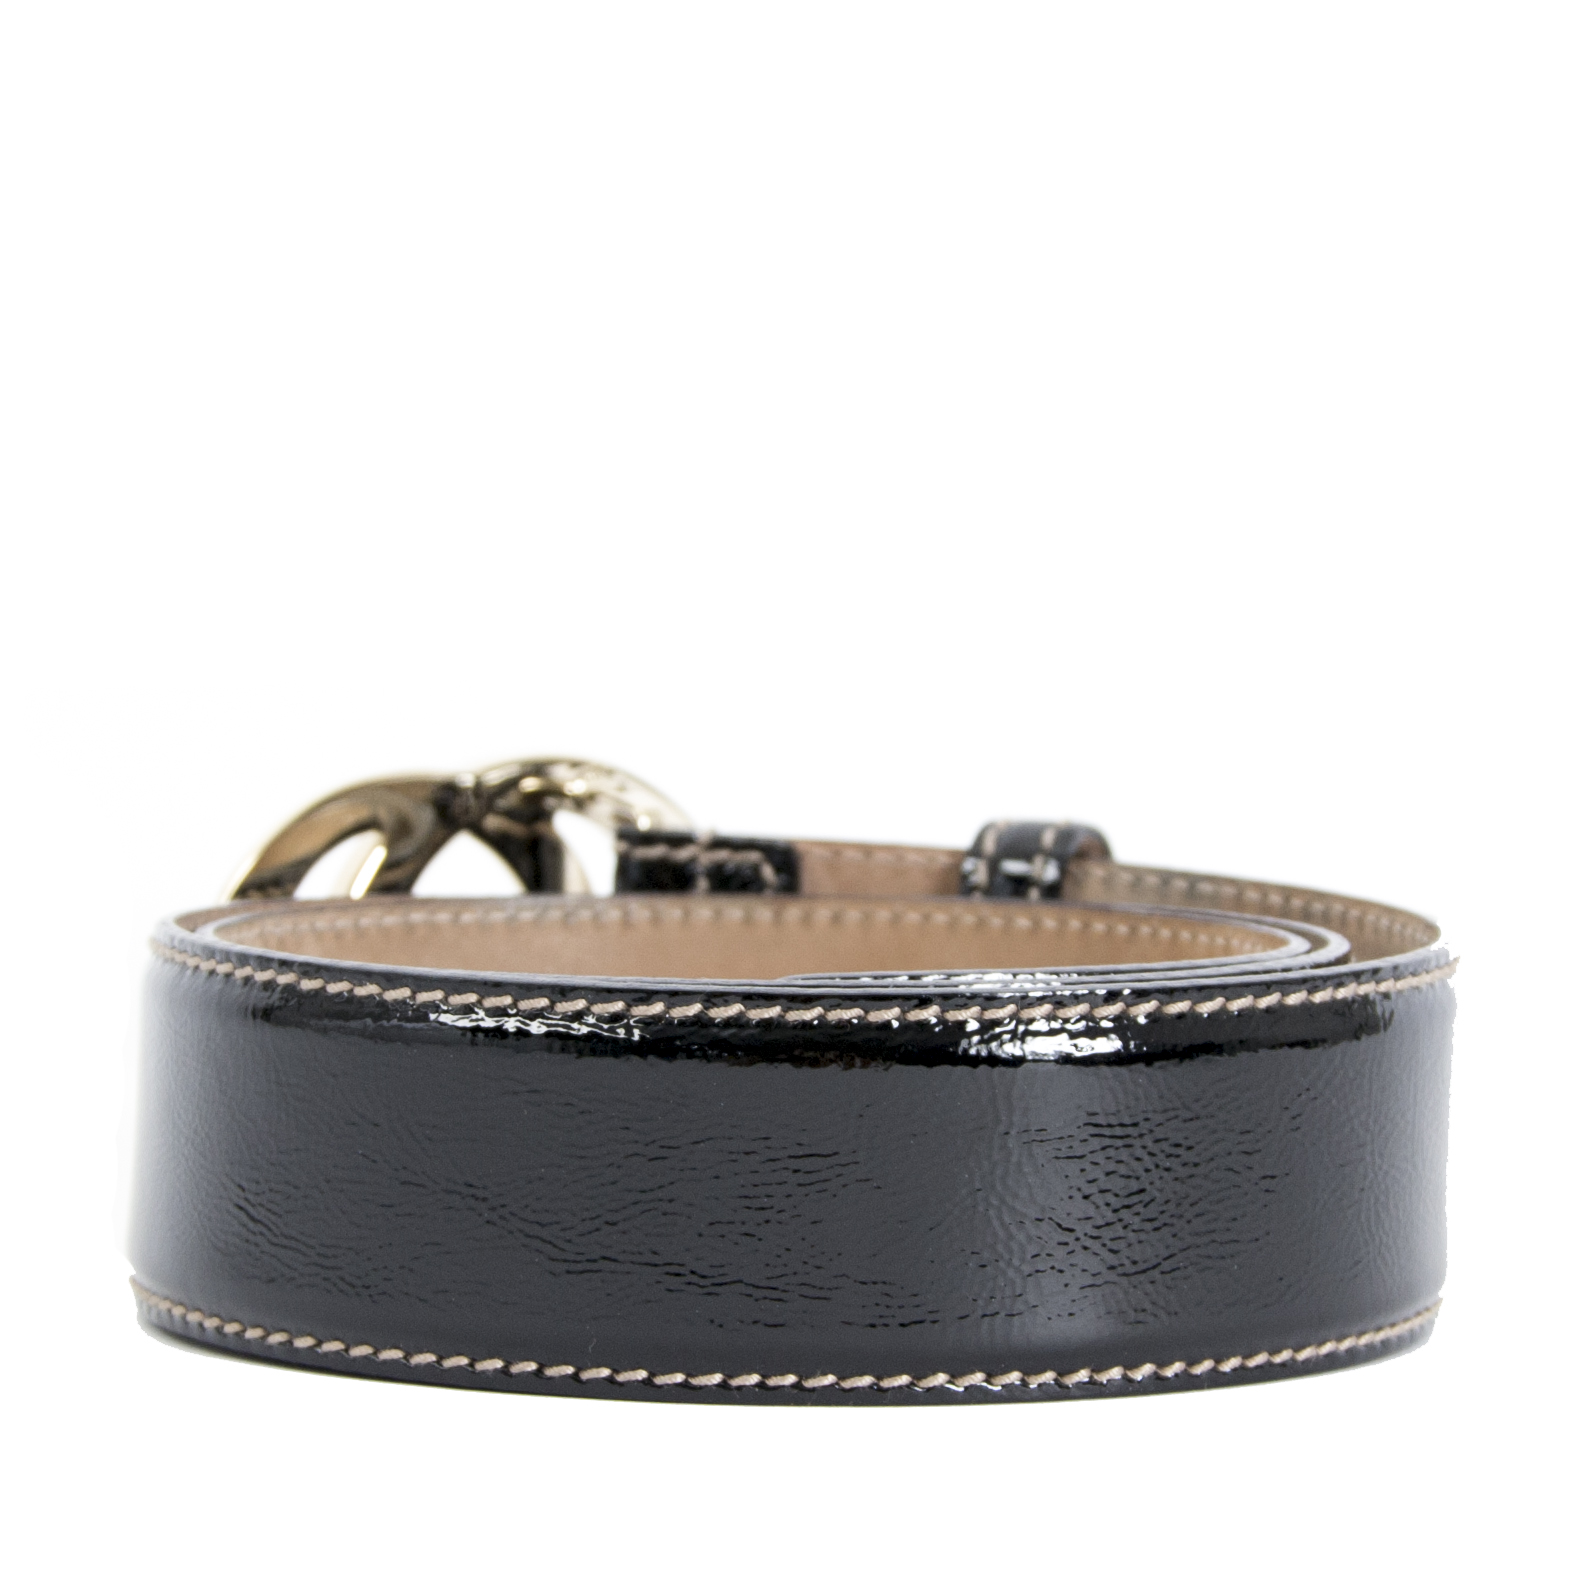 We buy and sell your authentic Gucci Black Patent Leather Belt